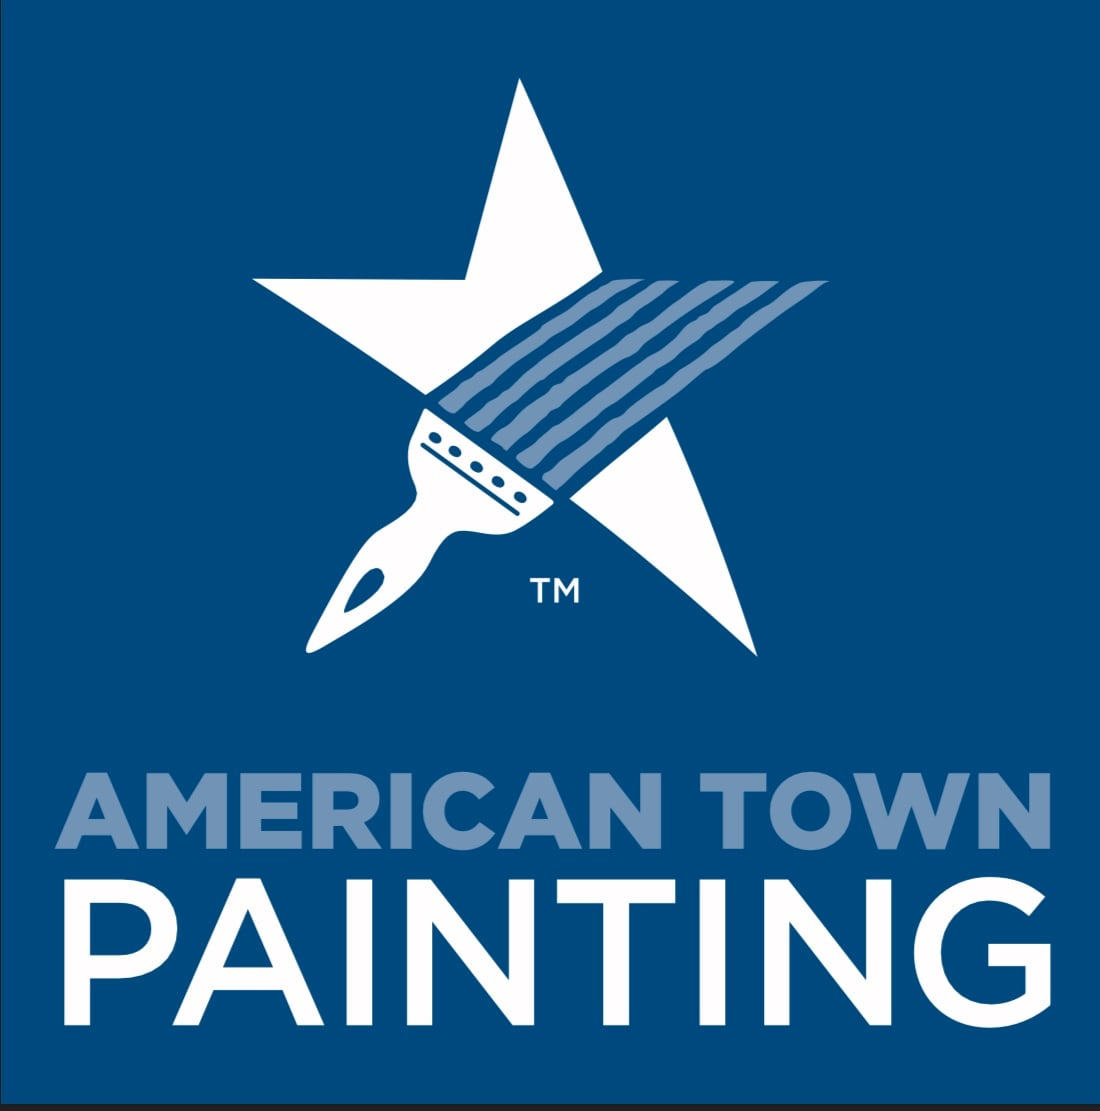 American Town Painting